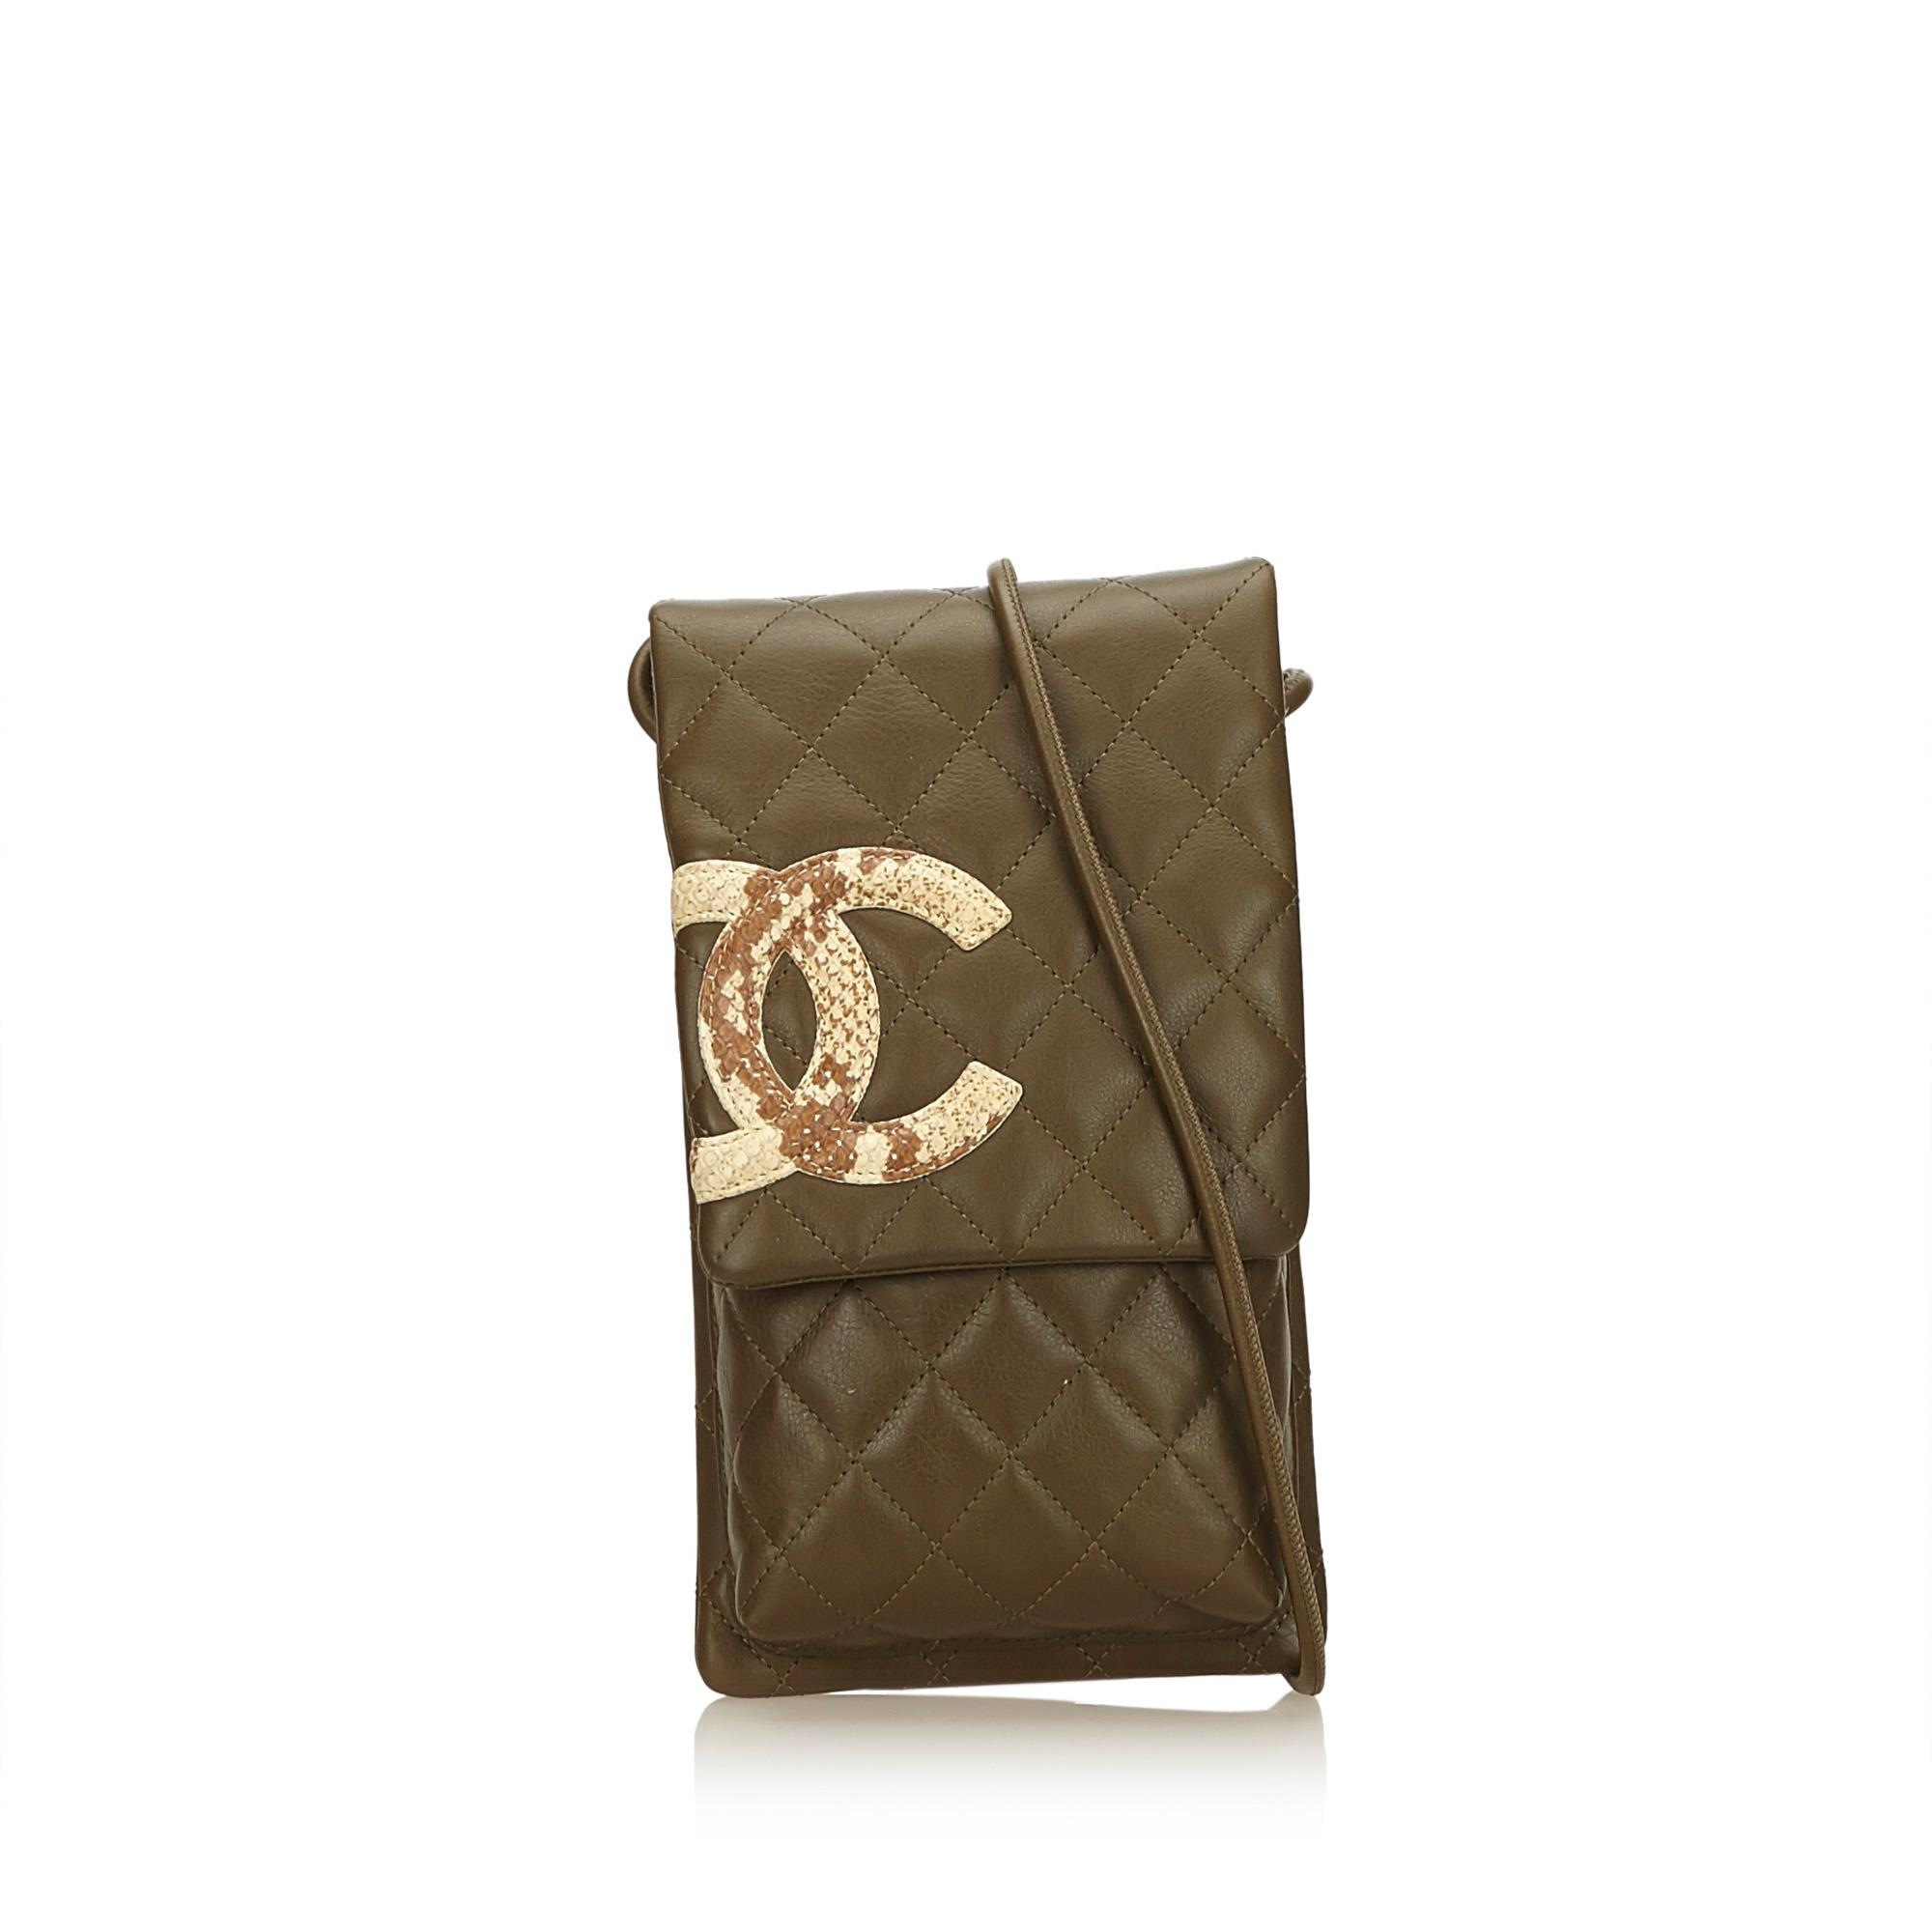 76942101d71c74 Chanel Cambon Ligne Crossbody Bag in Brown - Lyst